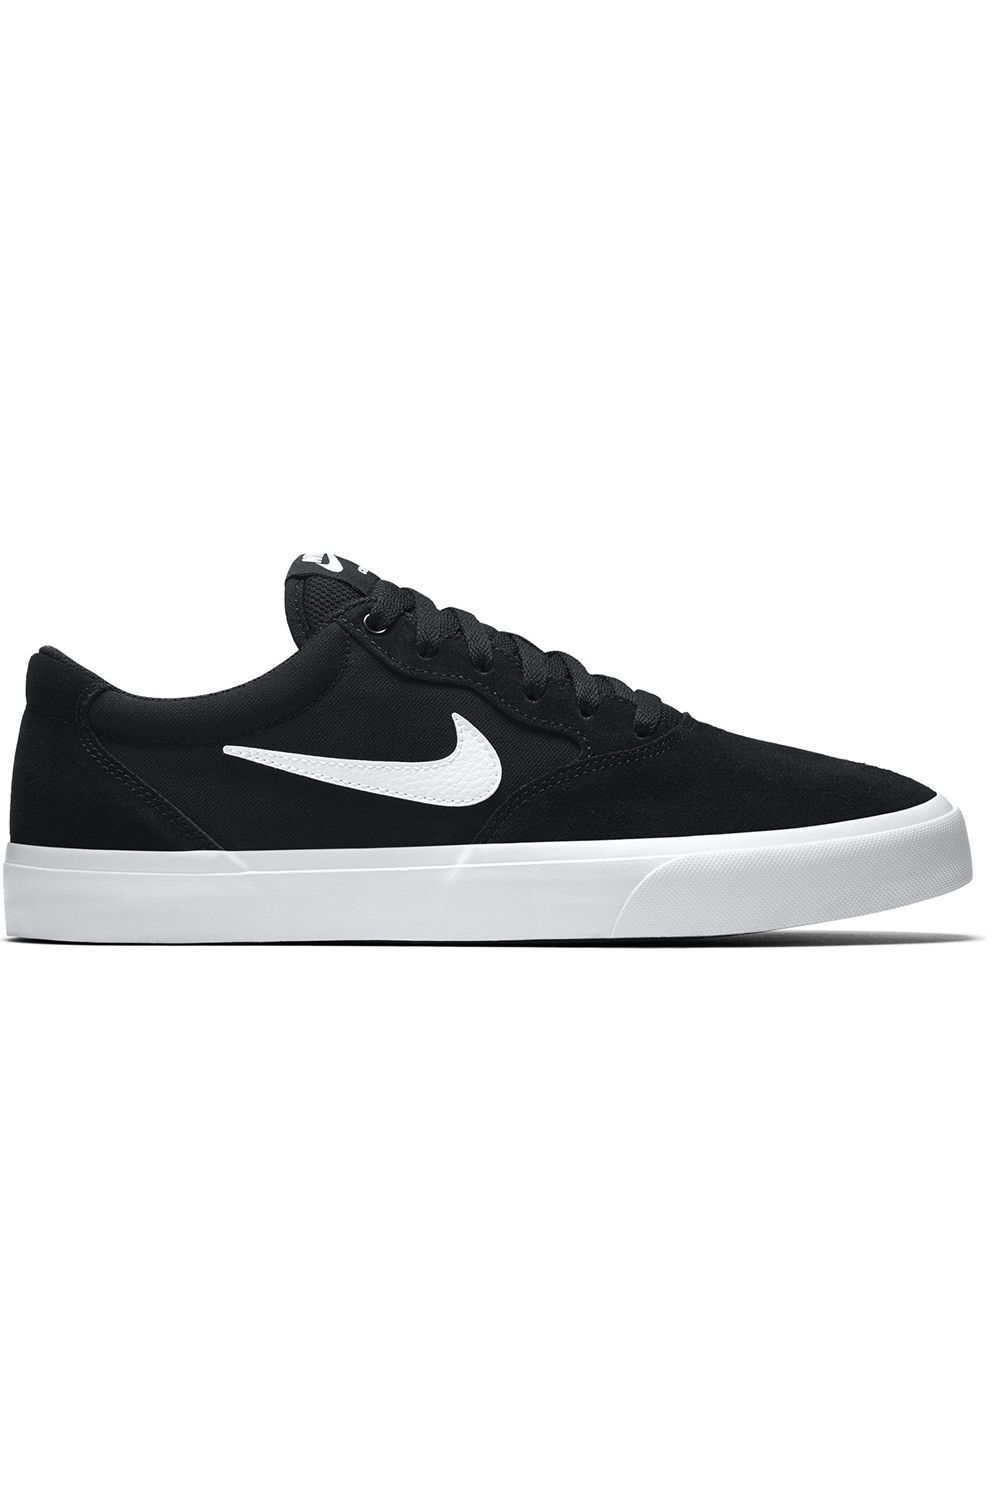 Tenis Nike Sb CHRON SOLARSOFT Black/White